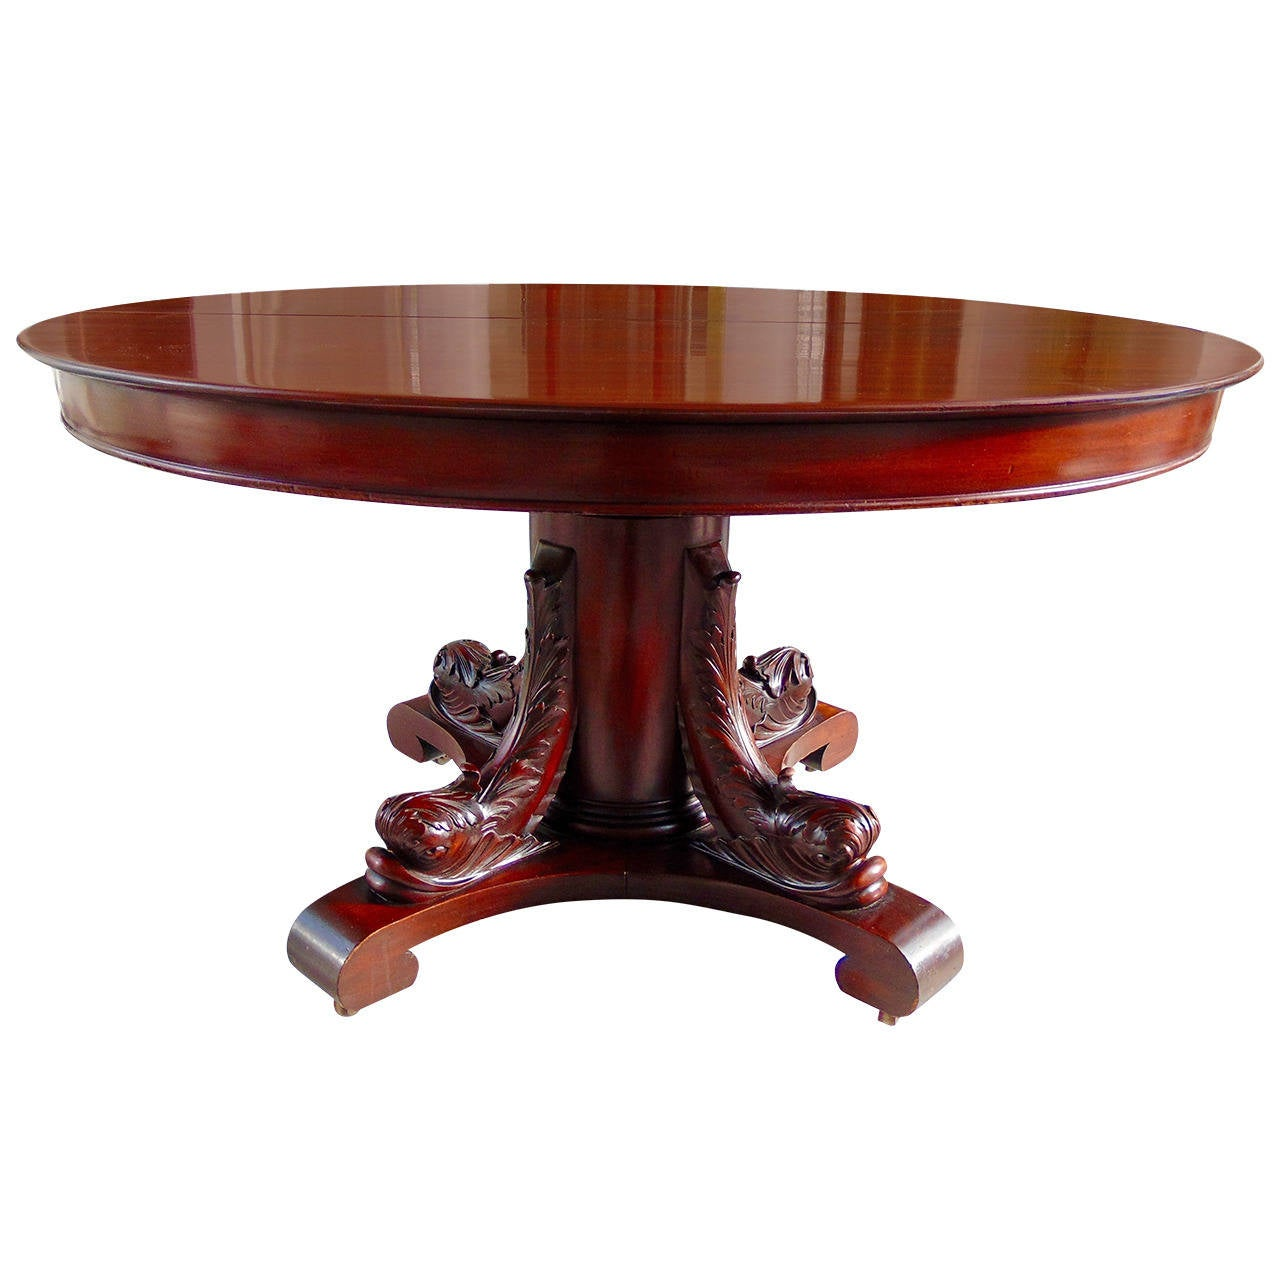 19th Century American Solid Mahogany Dolphin Base  : 2337282l from www.1stdibs.com size 1280 x 1280 jpeg 94kB